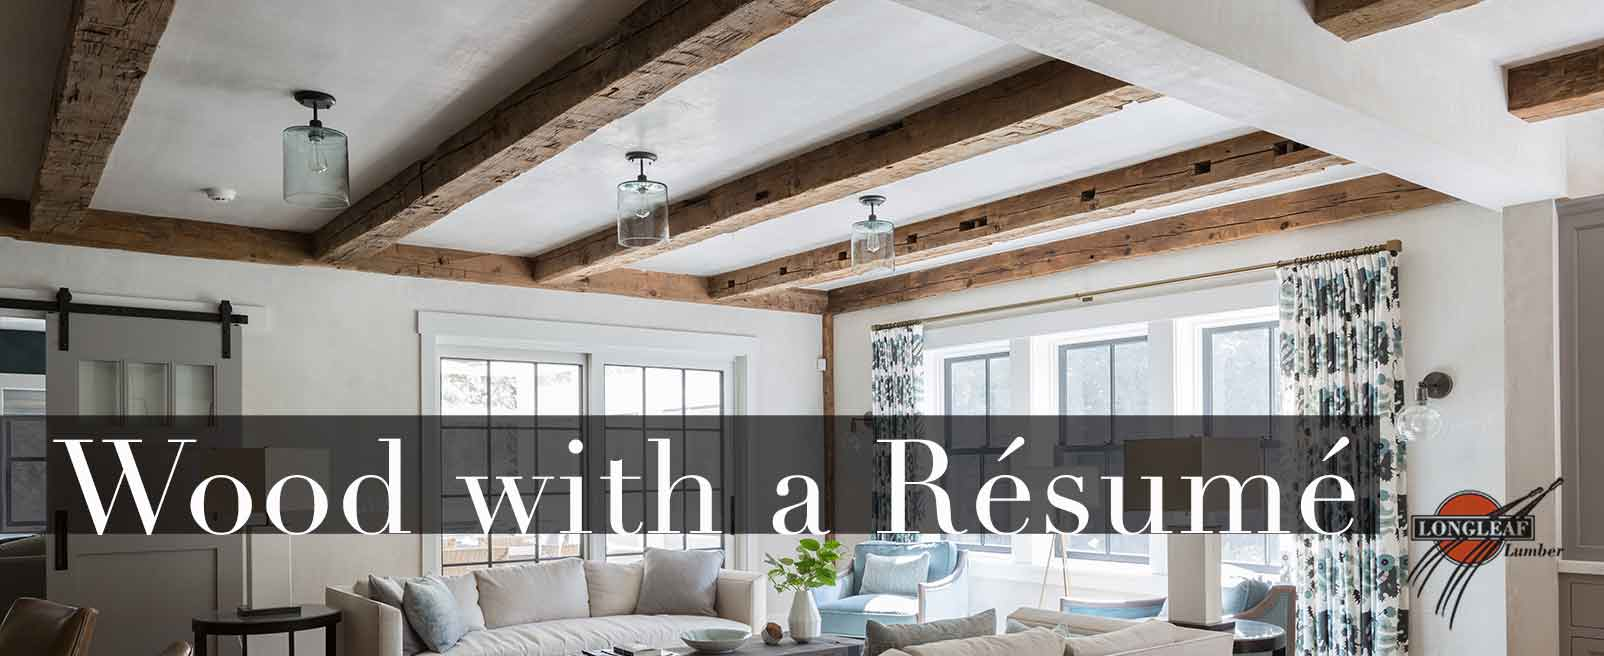 Longleaf Lumber Salvaged Antique Beams On Ceiling In Private Home